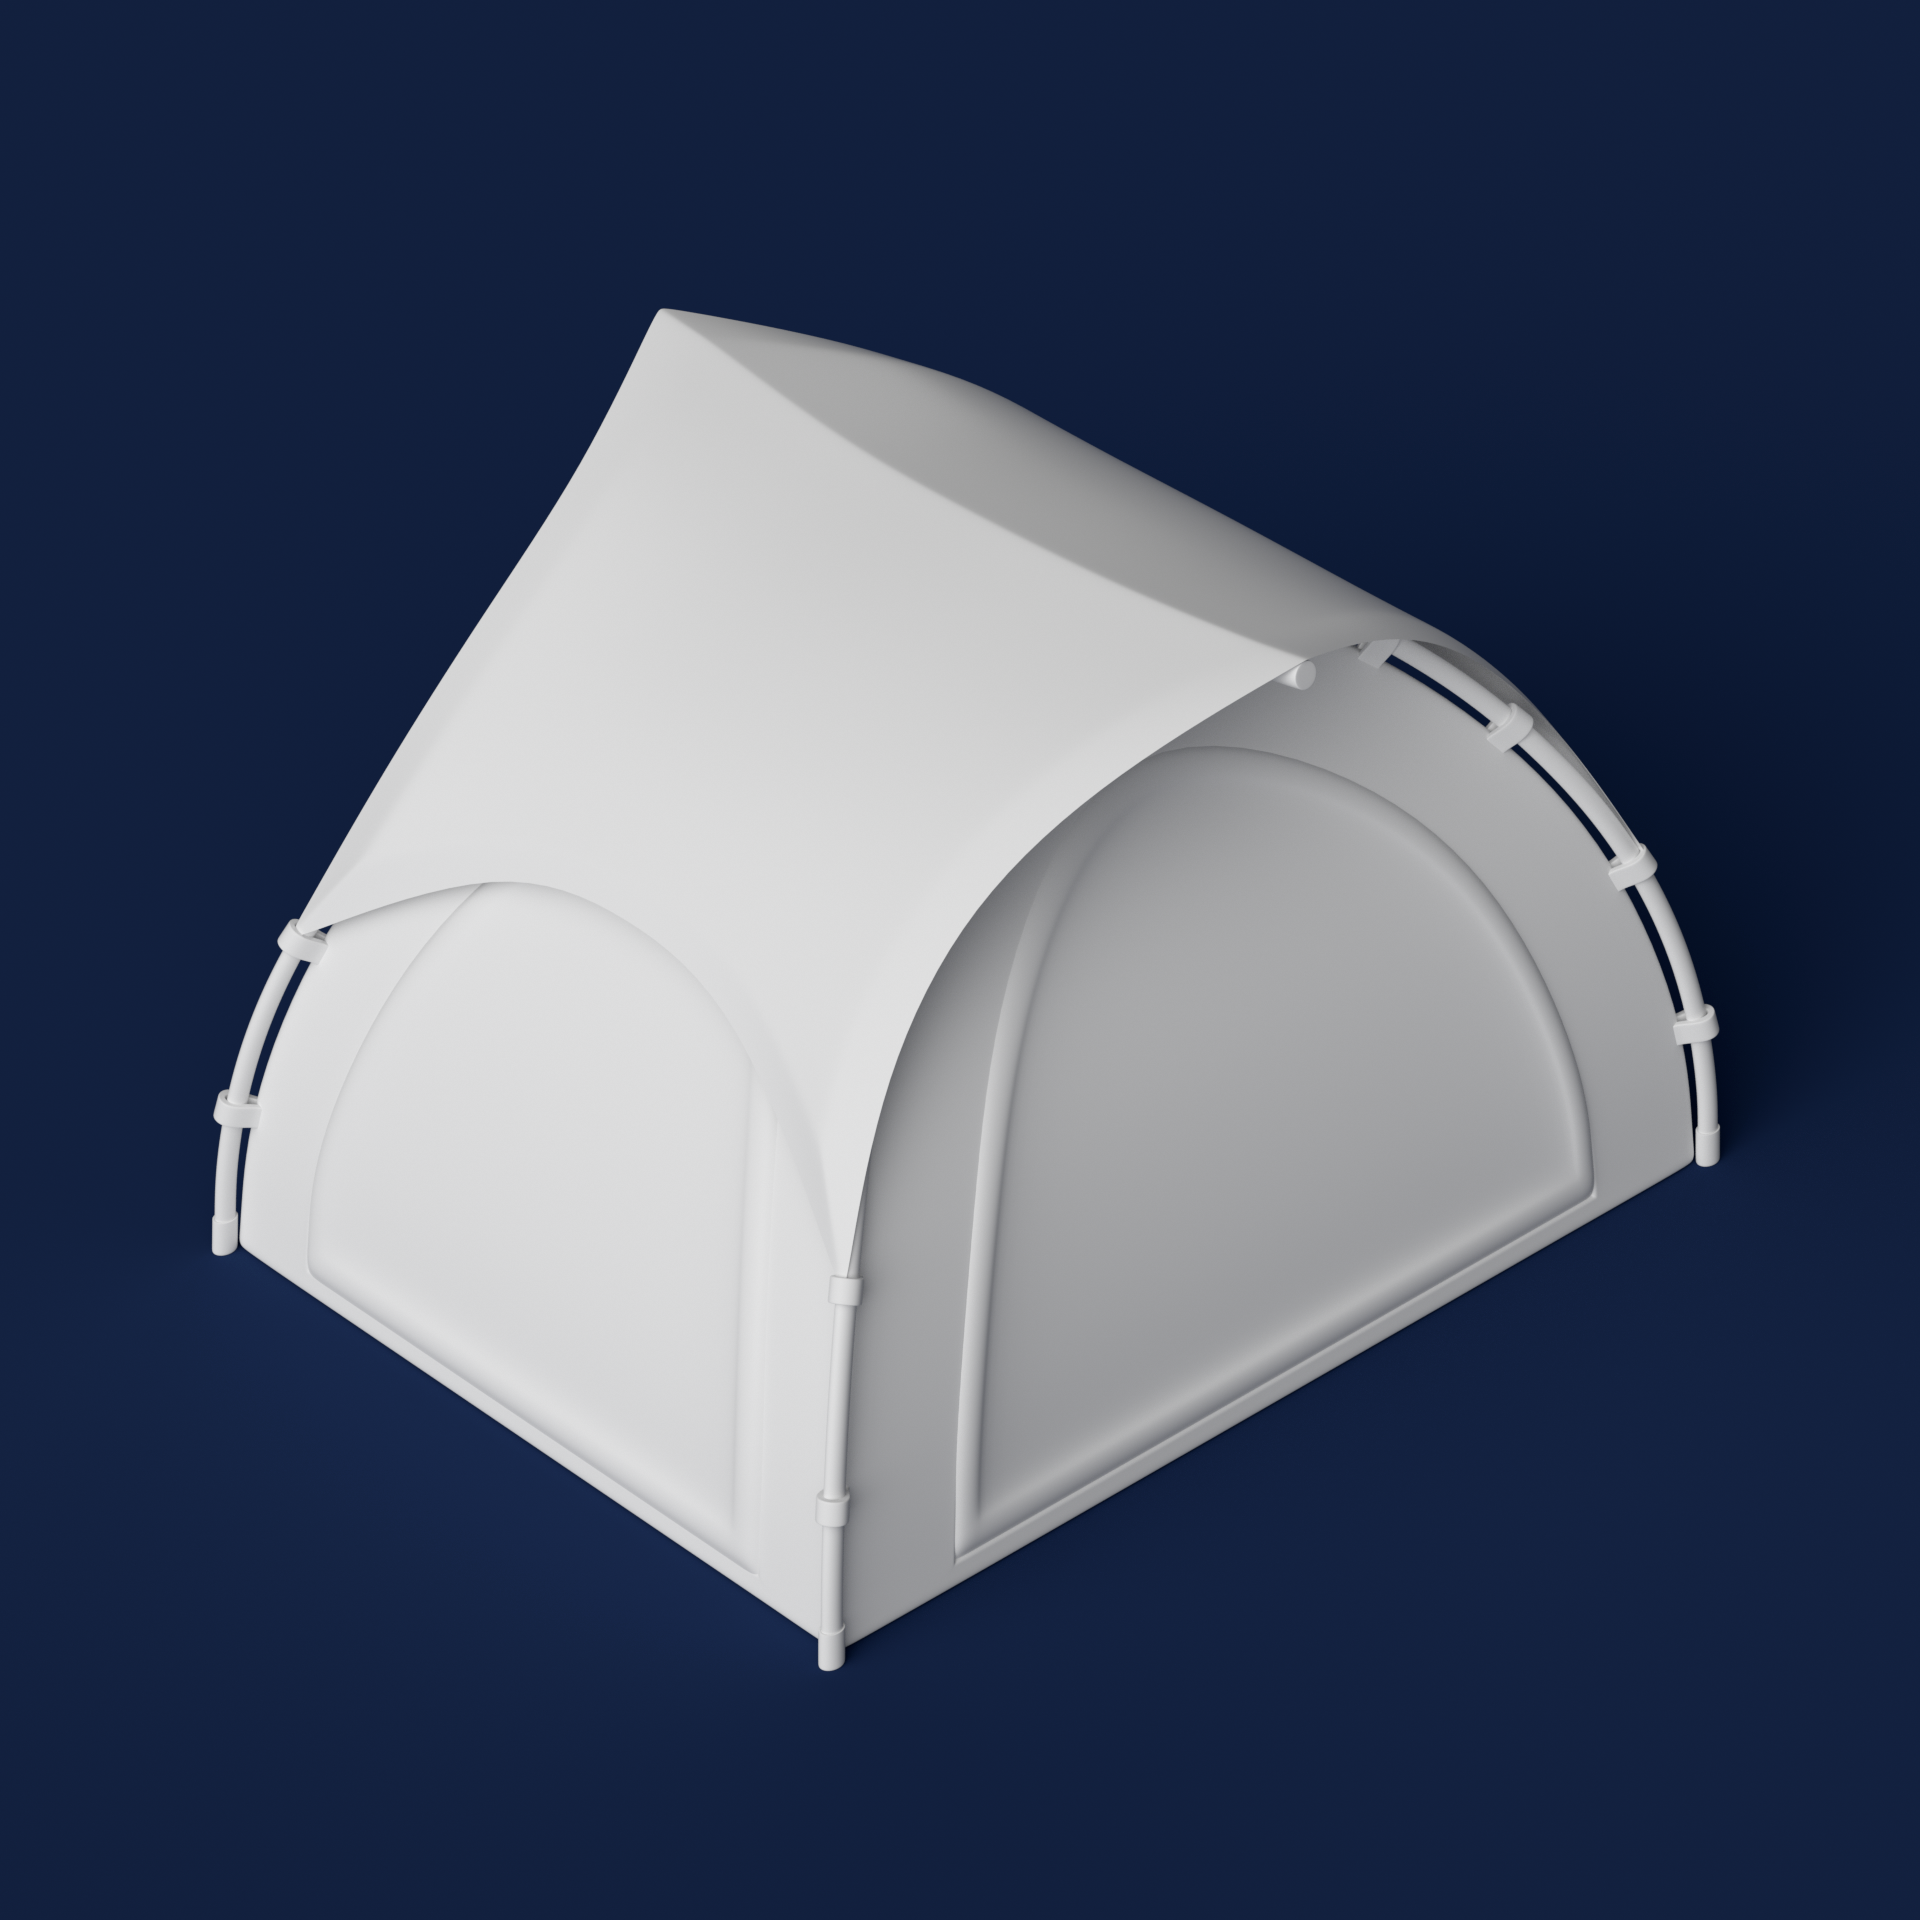 tent_4.png